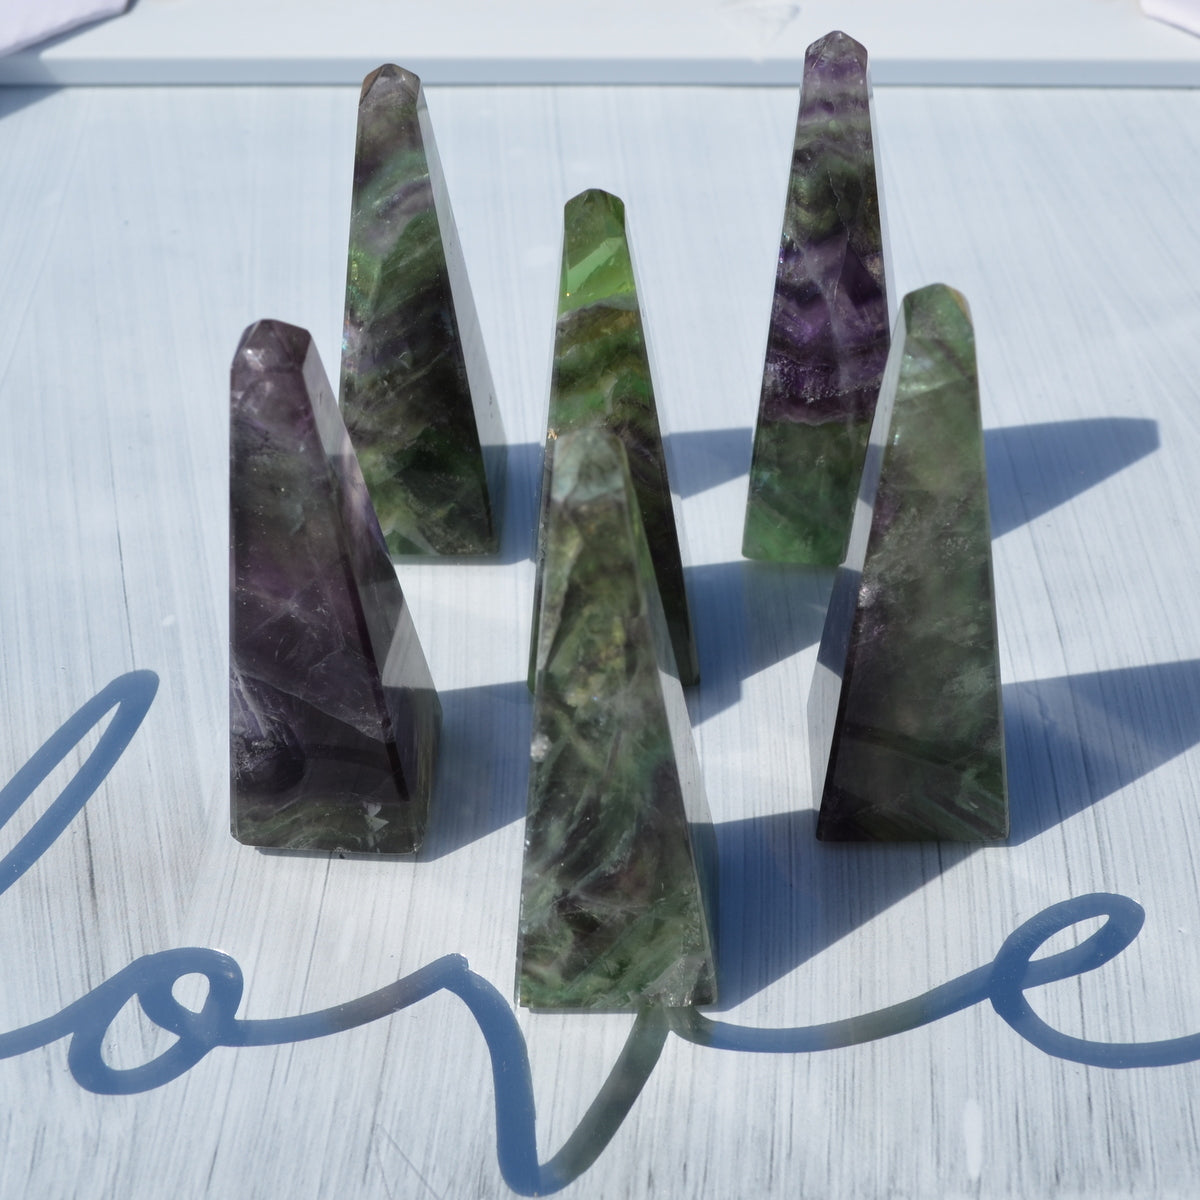 Fluorite Obelisk A Grade Each - Intuition Focus Cleansing - Buy Now at Illiom Crystals - Now with Afterpay